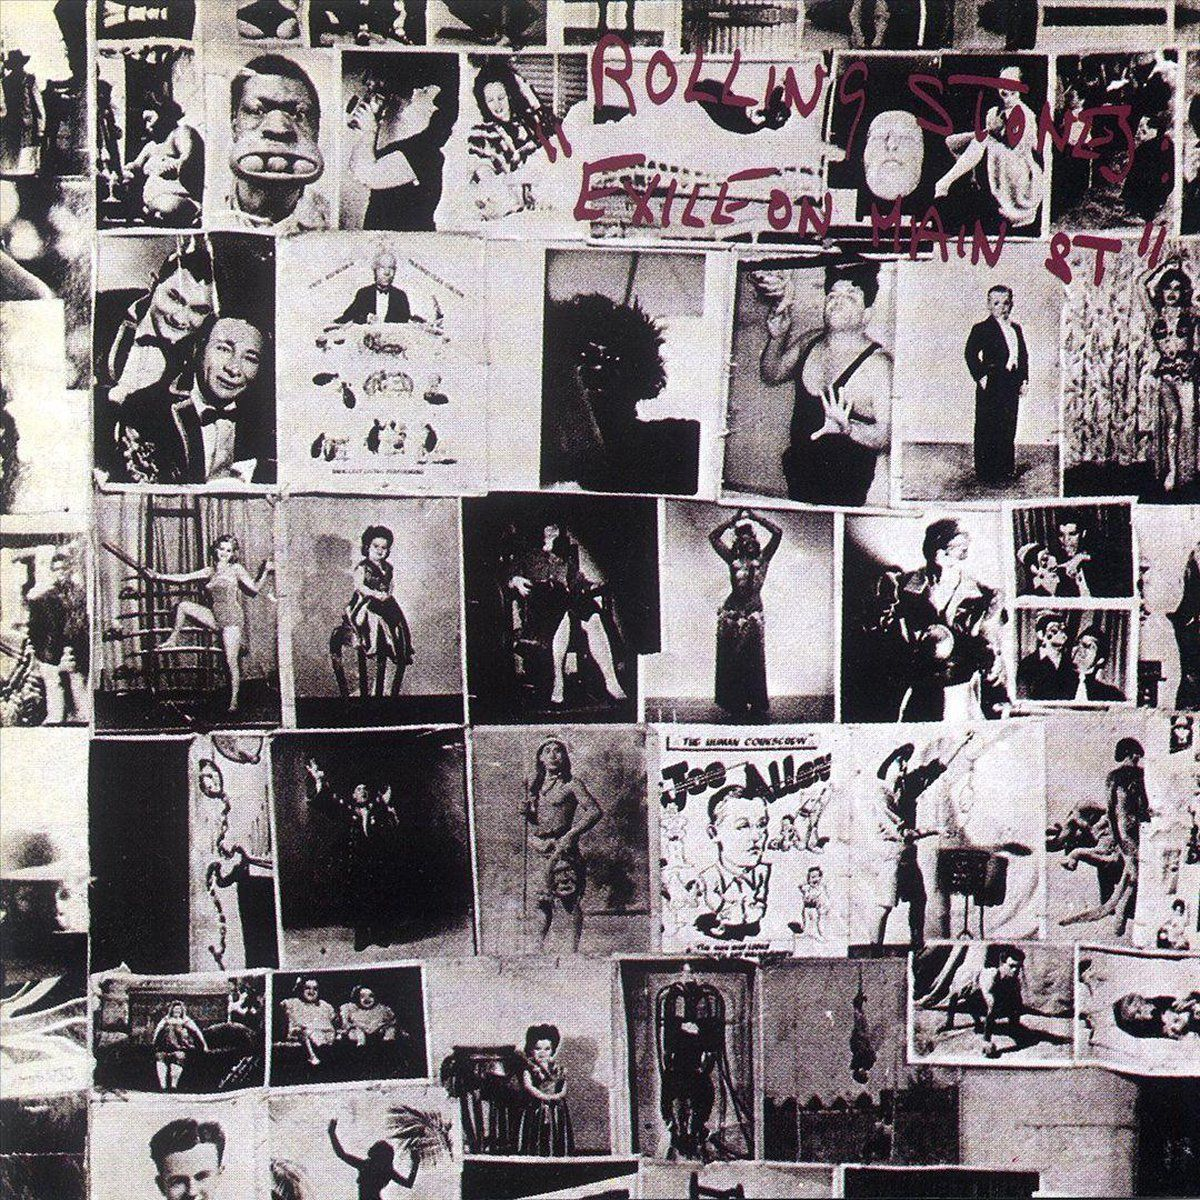 #Dubbelaars - The Rolling Stones - Let It Loose - Exile On Main St.' (1972)